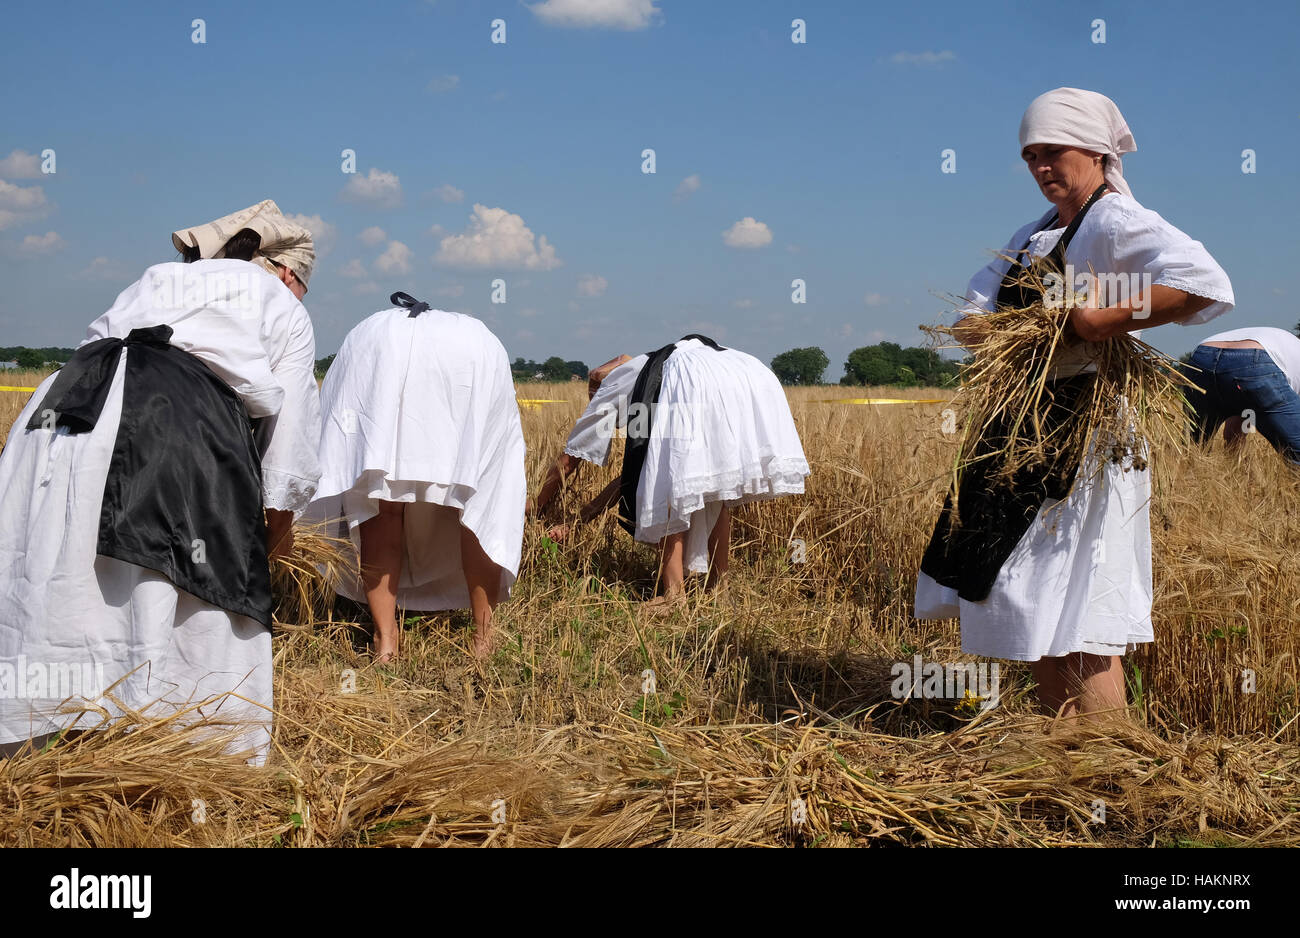 Peasant woman harvesting wheat with scythe in wheat fields in Nedelisce, Croatia - Stock Image